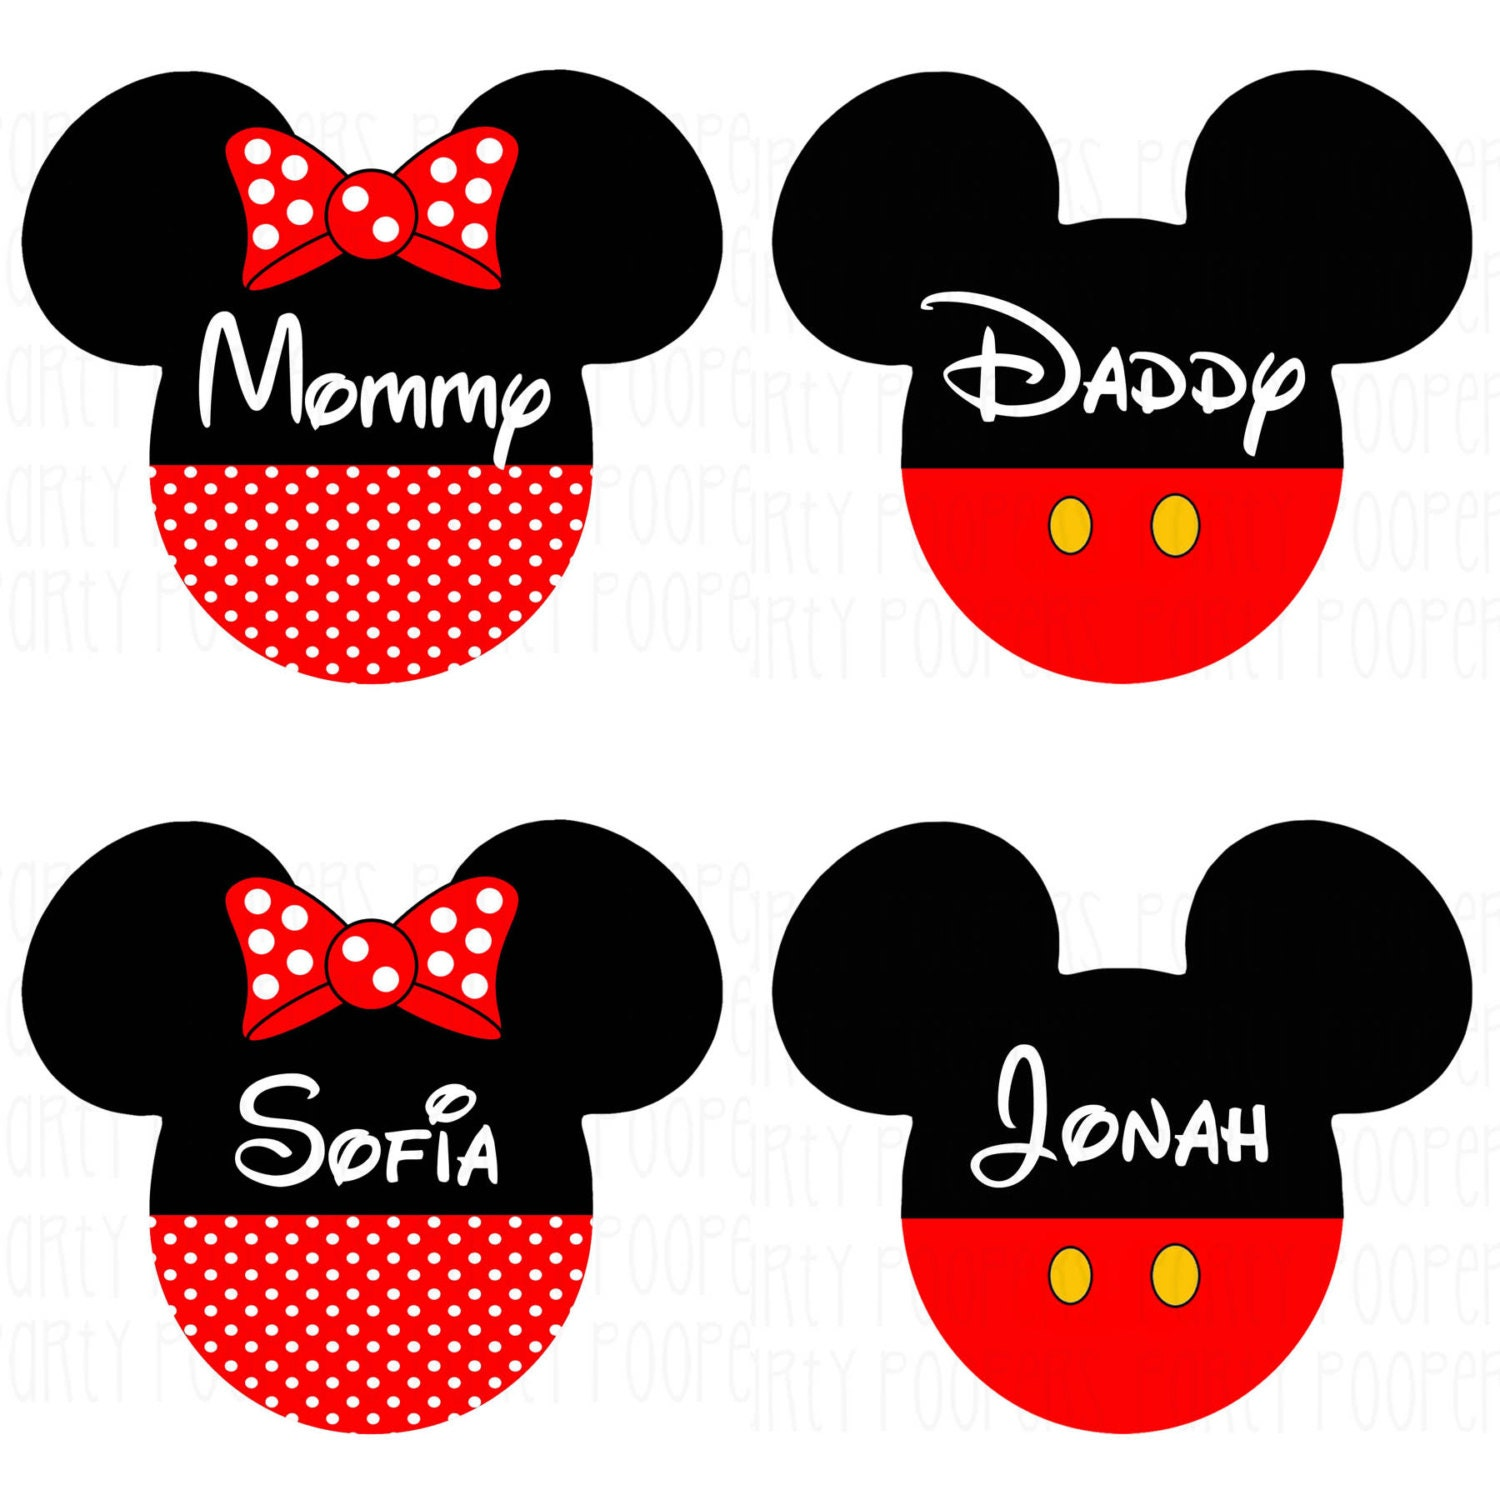 It is a graphic of Zany Disney Iron on Transfers